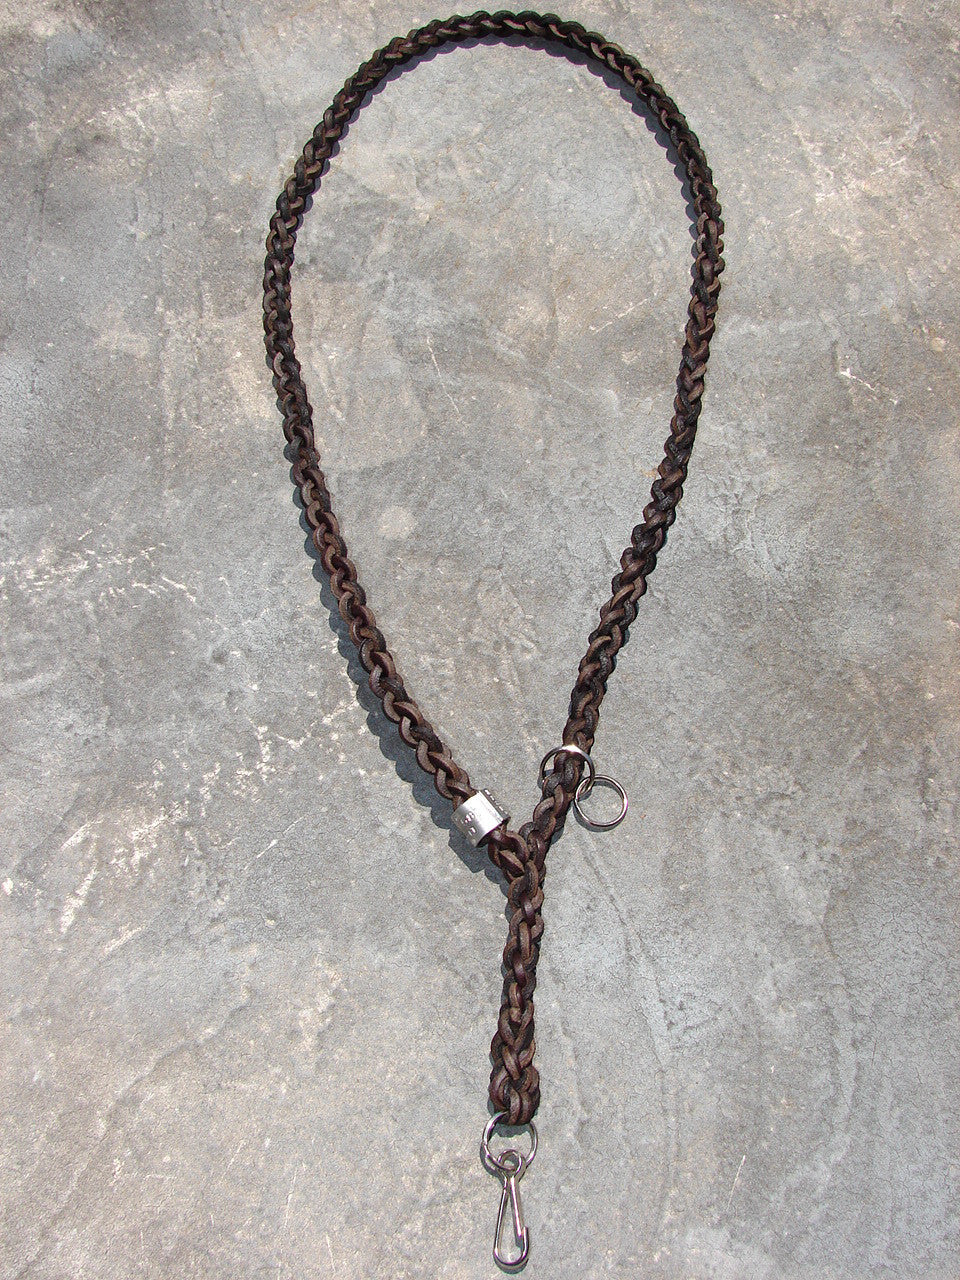 Single whistle lanyard